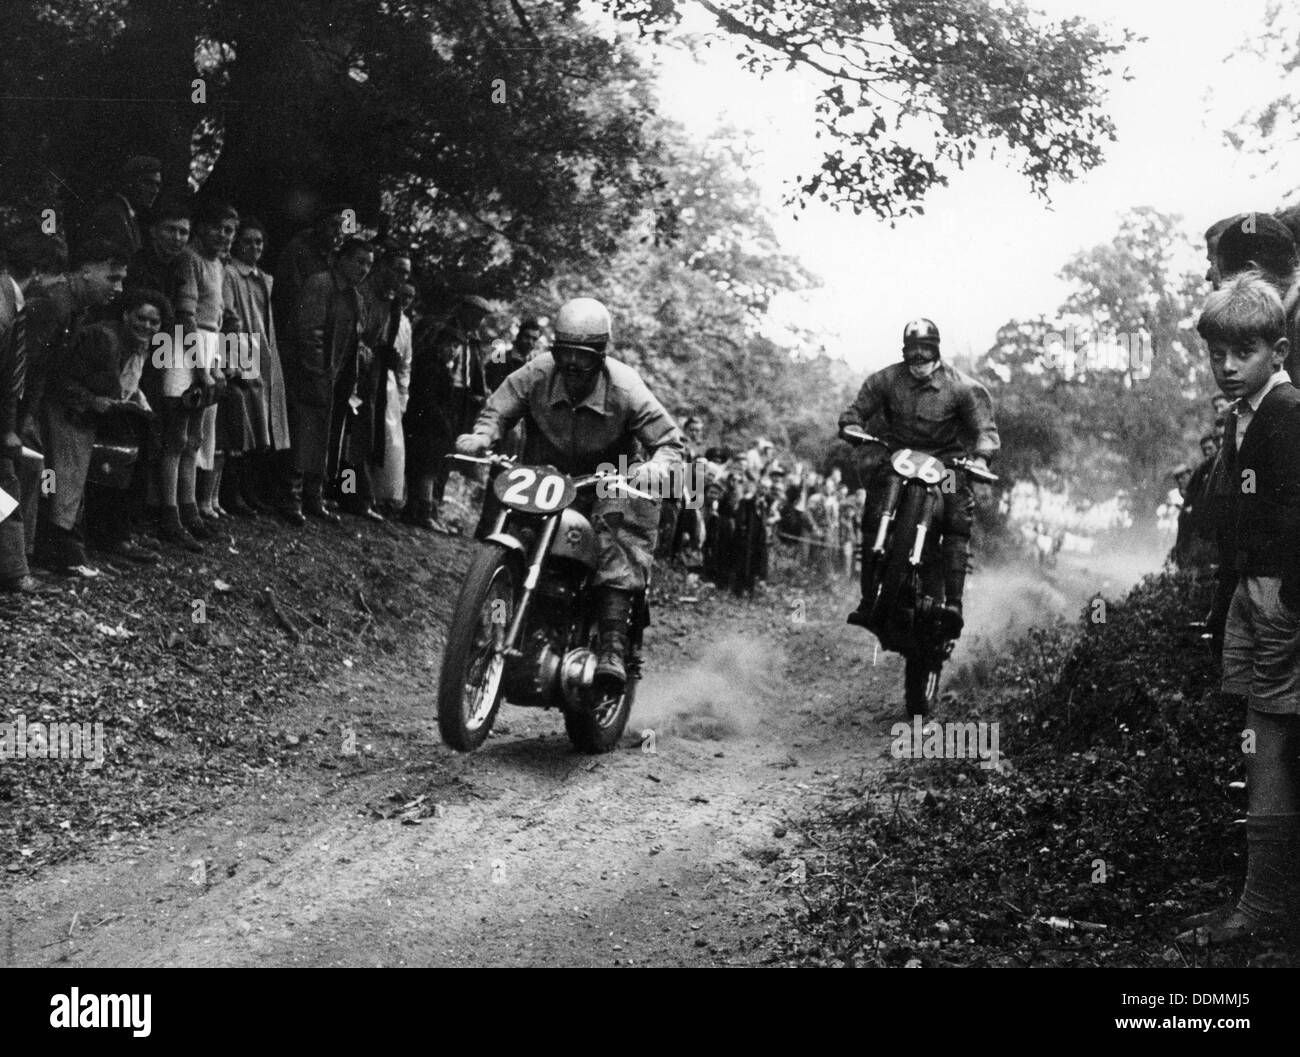 Action from the National (Open) Shrubland Park Scramble, Suffolk, 1952. - Stock Image